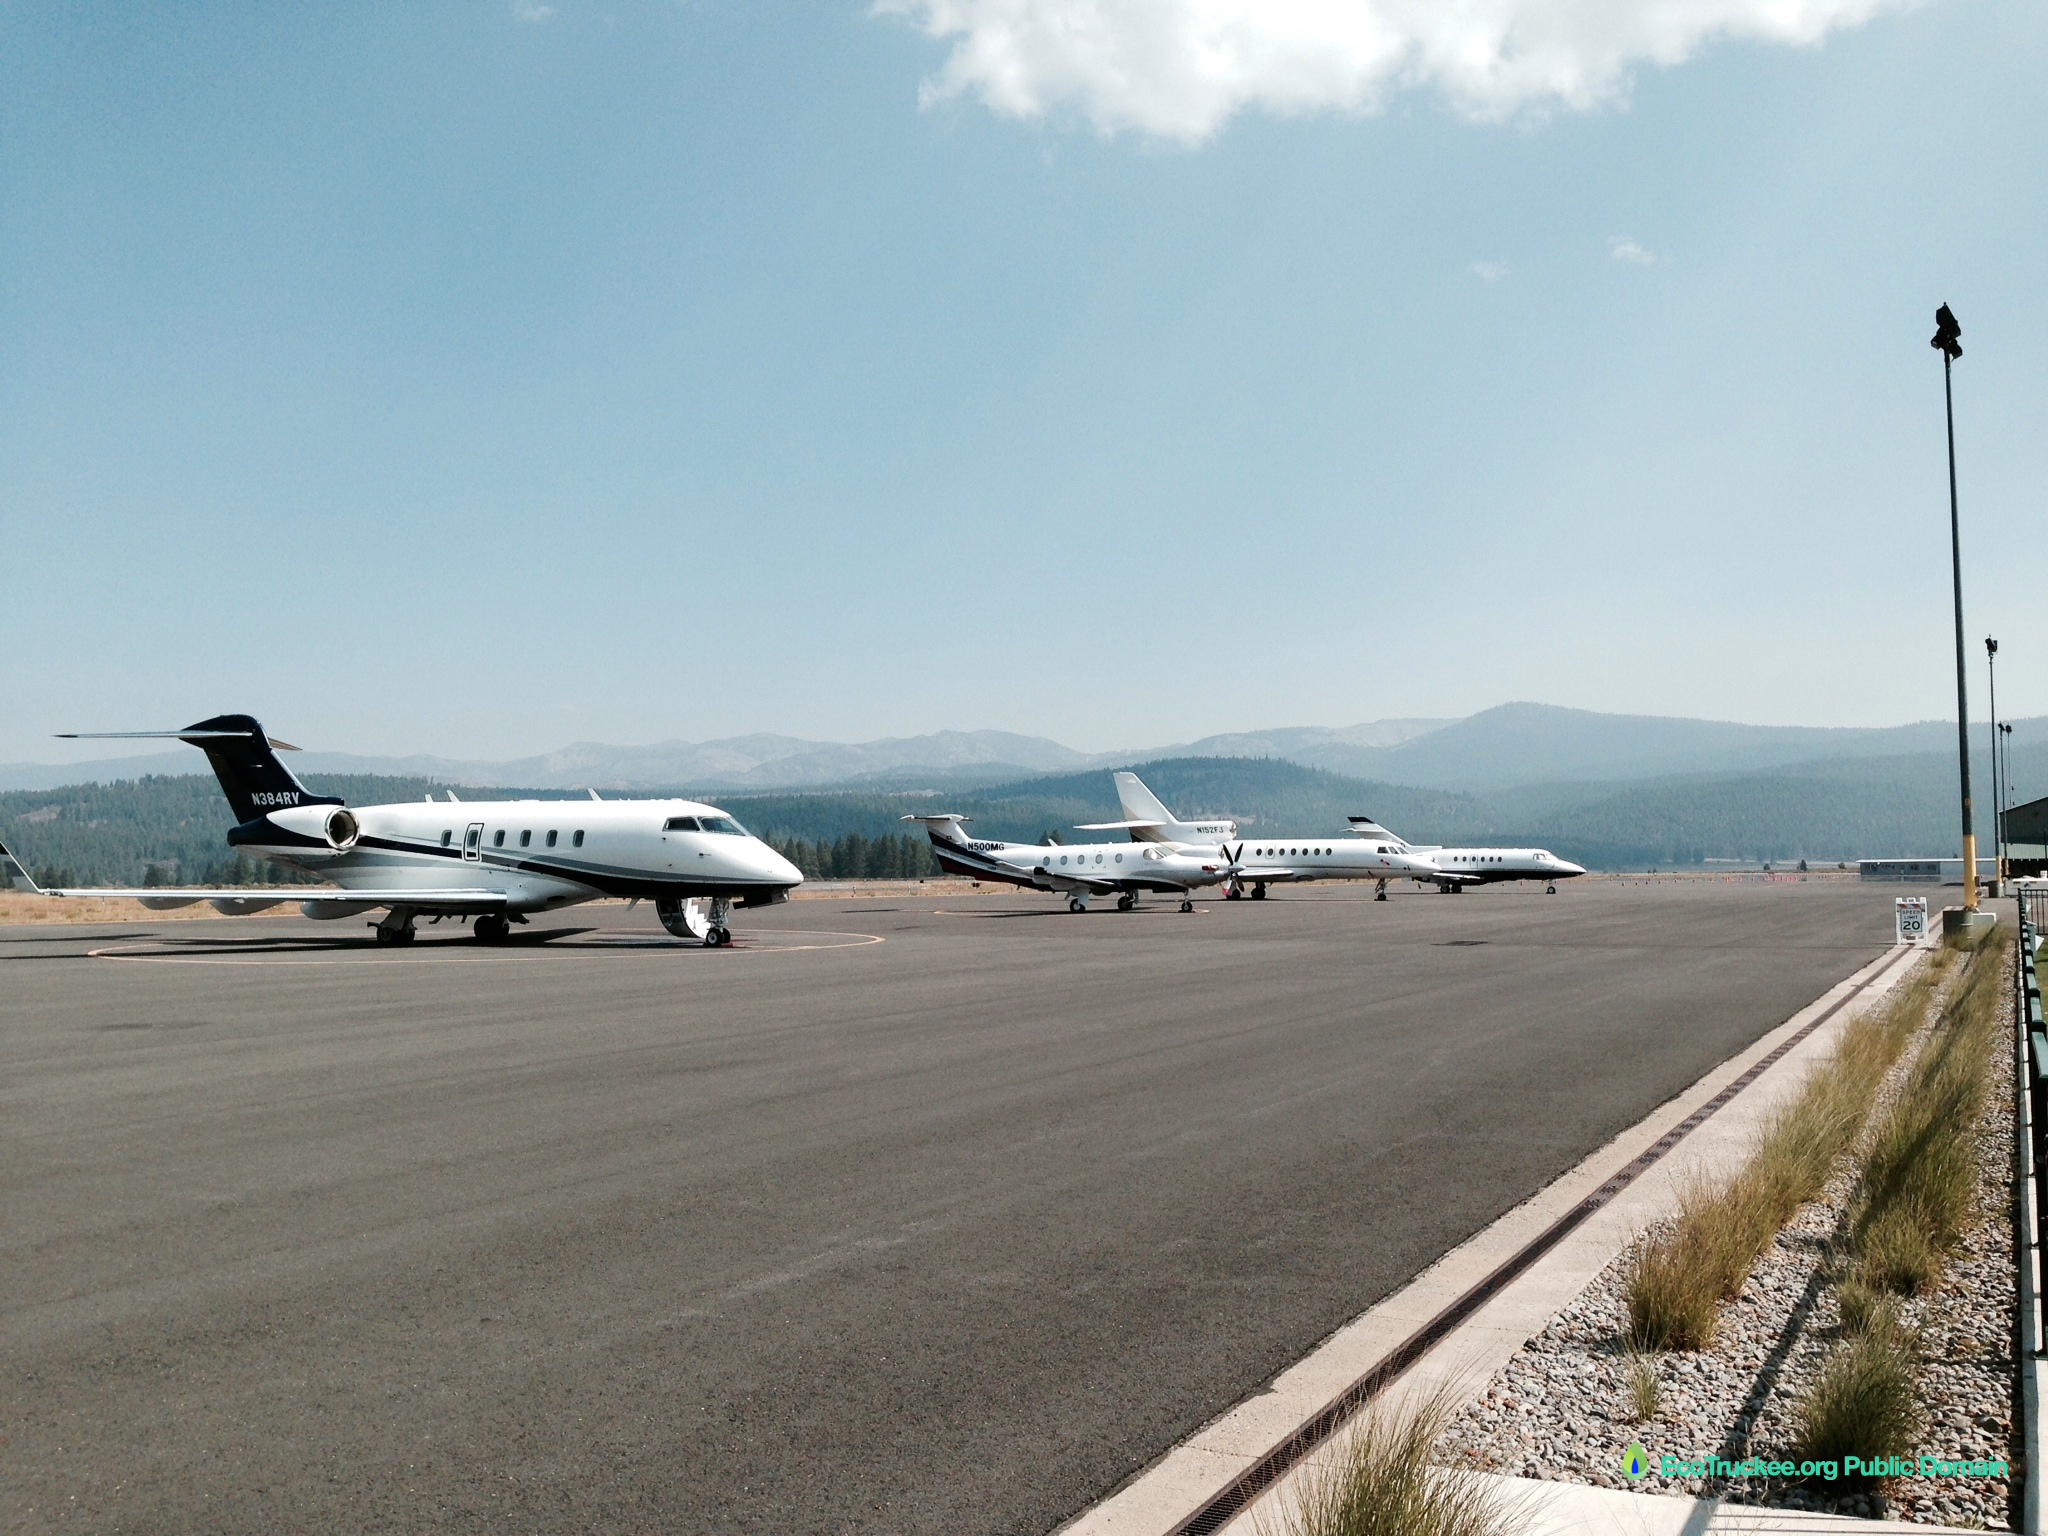 Car Rental Reno Airport: Surf Air Could Fly To Reno Instead To Protect Fragile